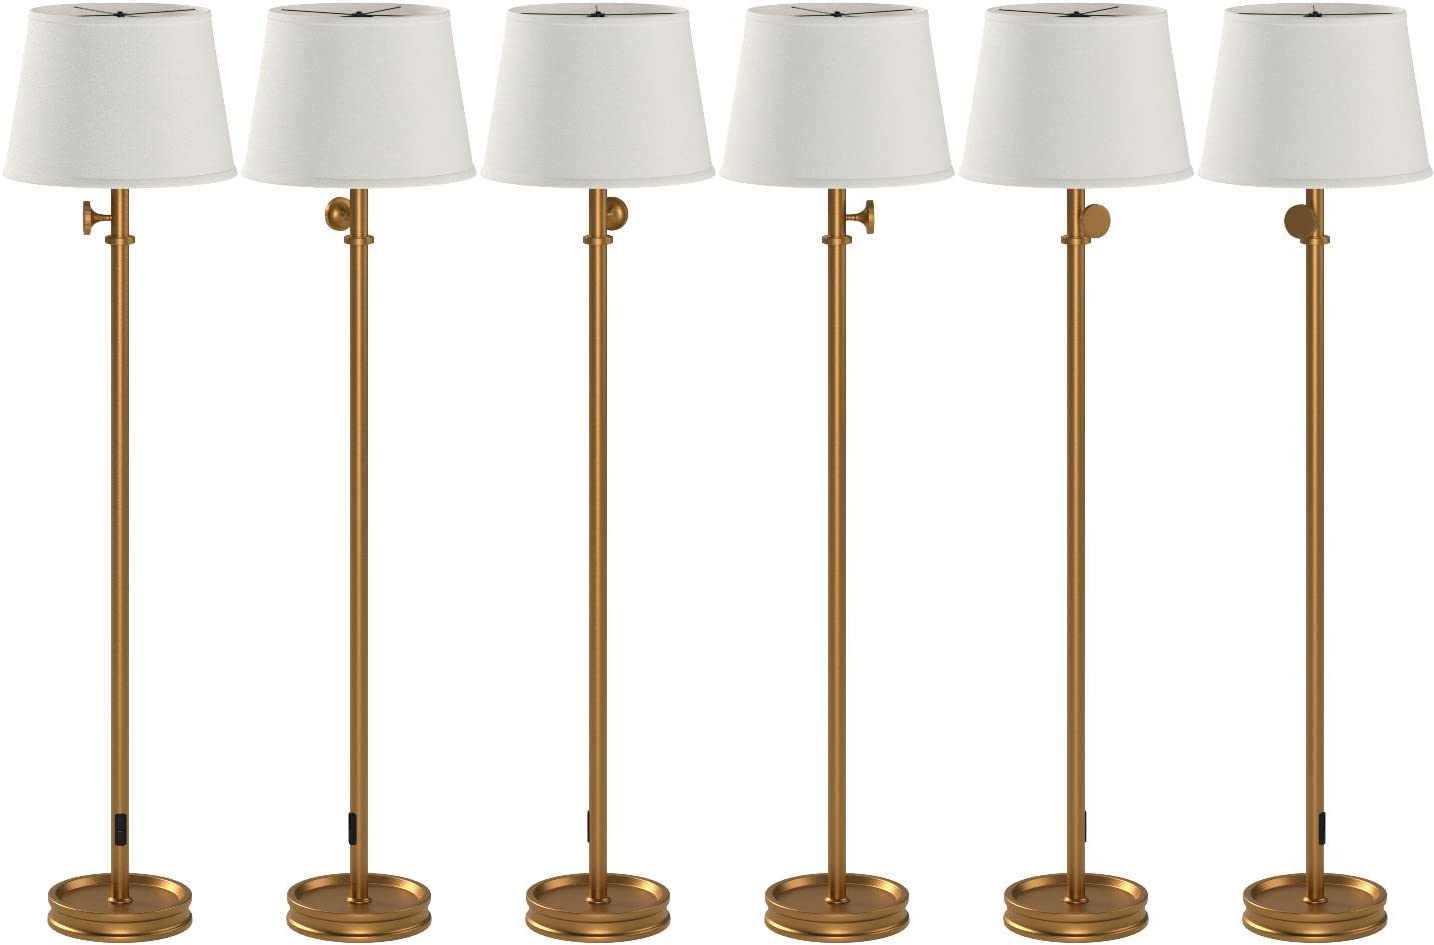 Stone & Beam Modern Traditional Living Room Table Desk Lamp With